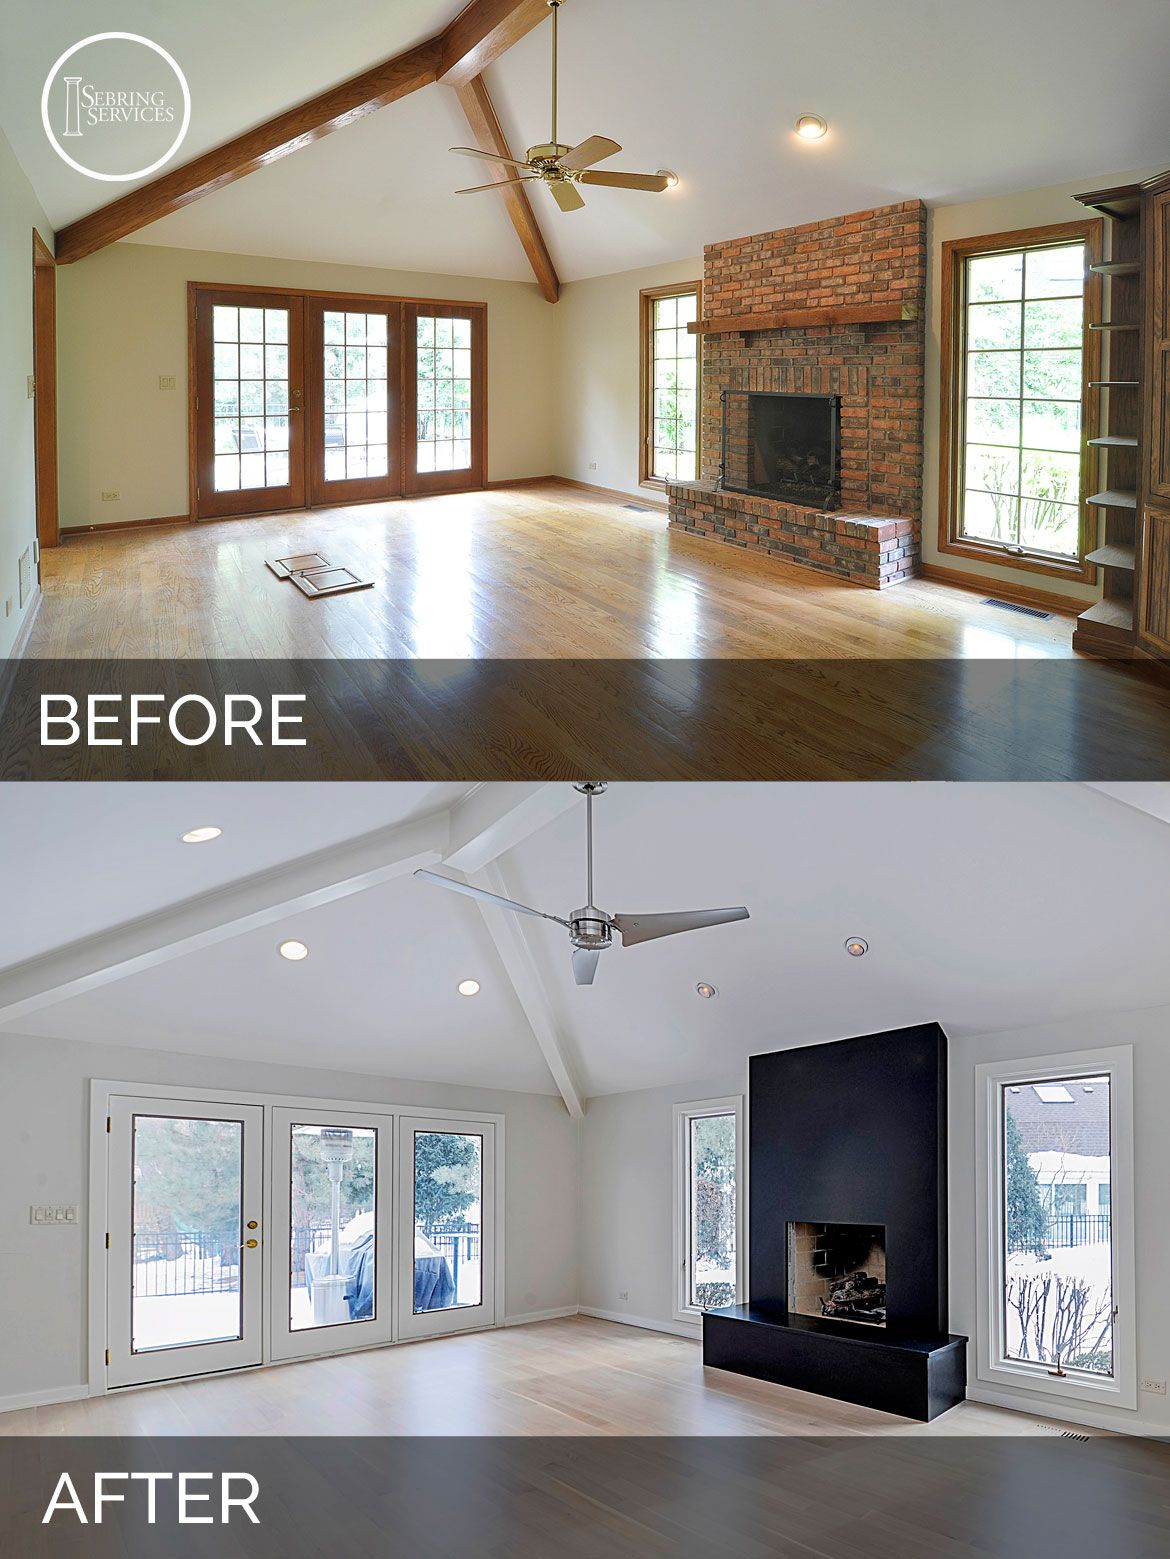 Jeff Betsy S Kitchen Before After Pictures In 2020 Home